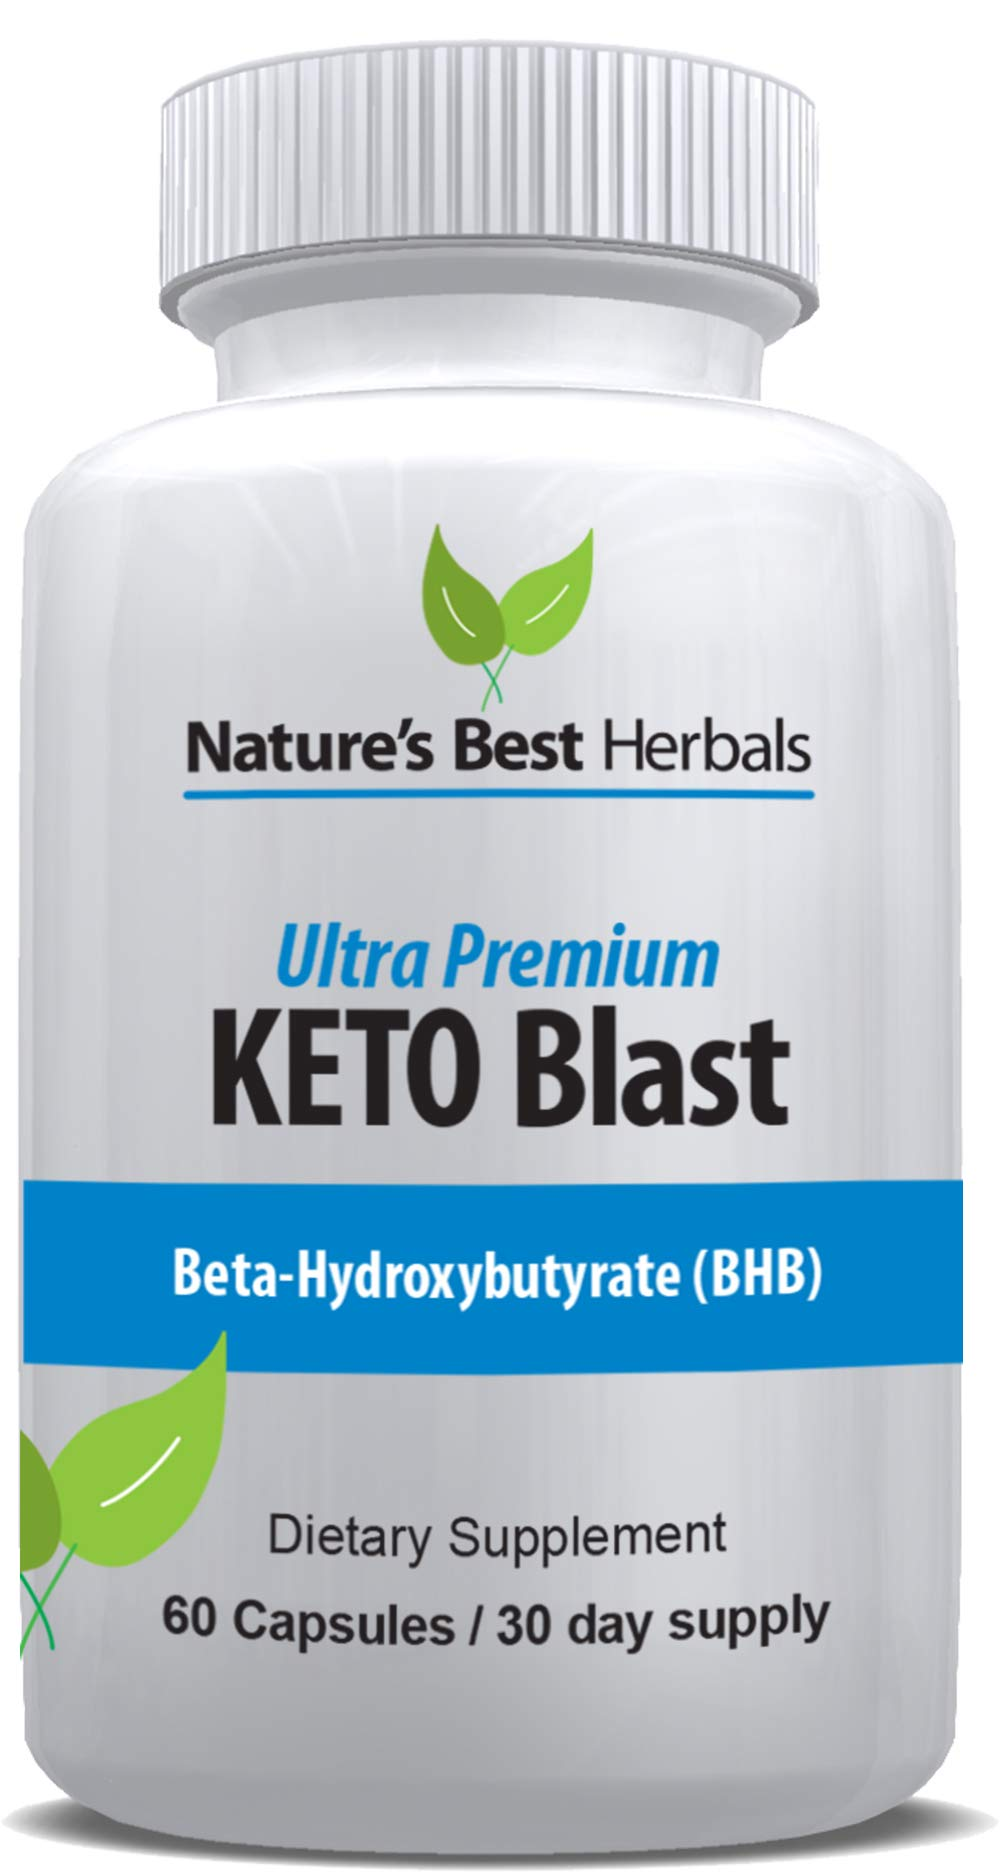 Ultra Premium Keto Blast | Weight Loss Supplement for Fast Fat Burn - Boost Energy and Speed Metabolism | Betahydroxybutyrate (BHB) Ketogenic | Best Keto Diet Pills - 800 mg, 60 Capsules